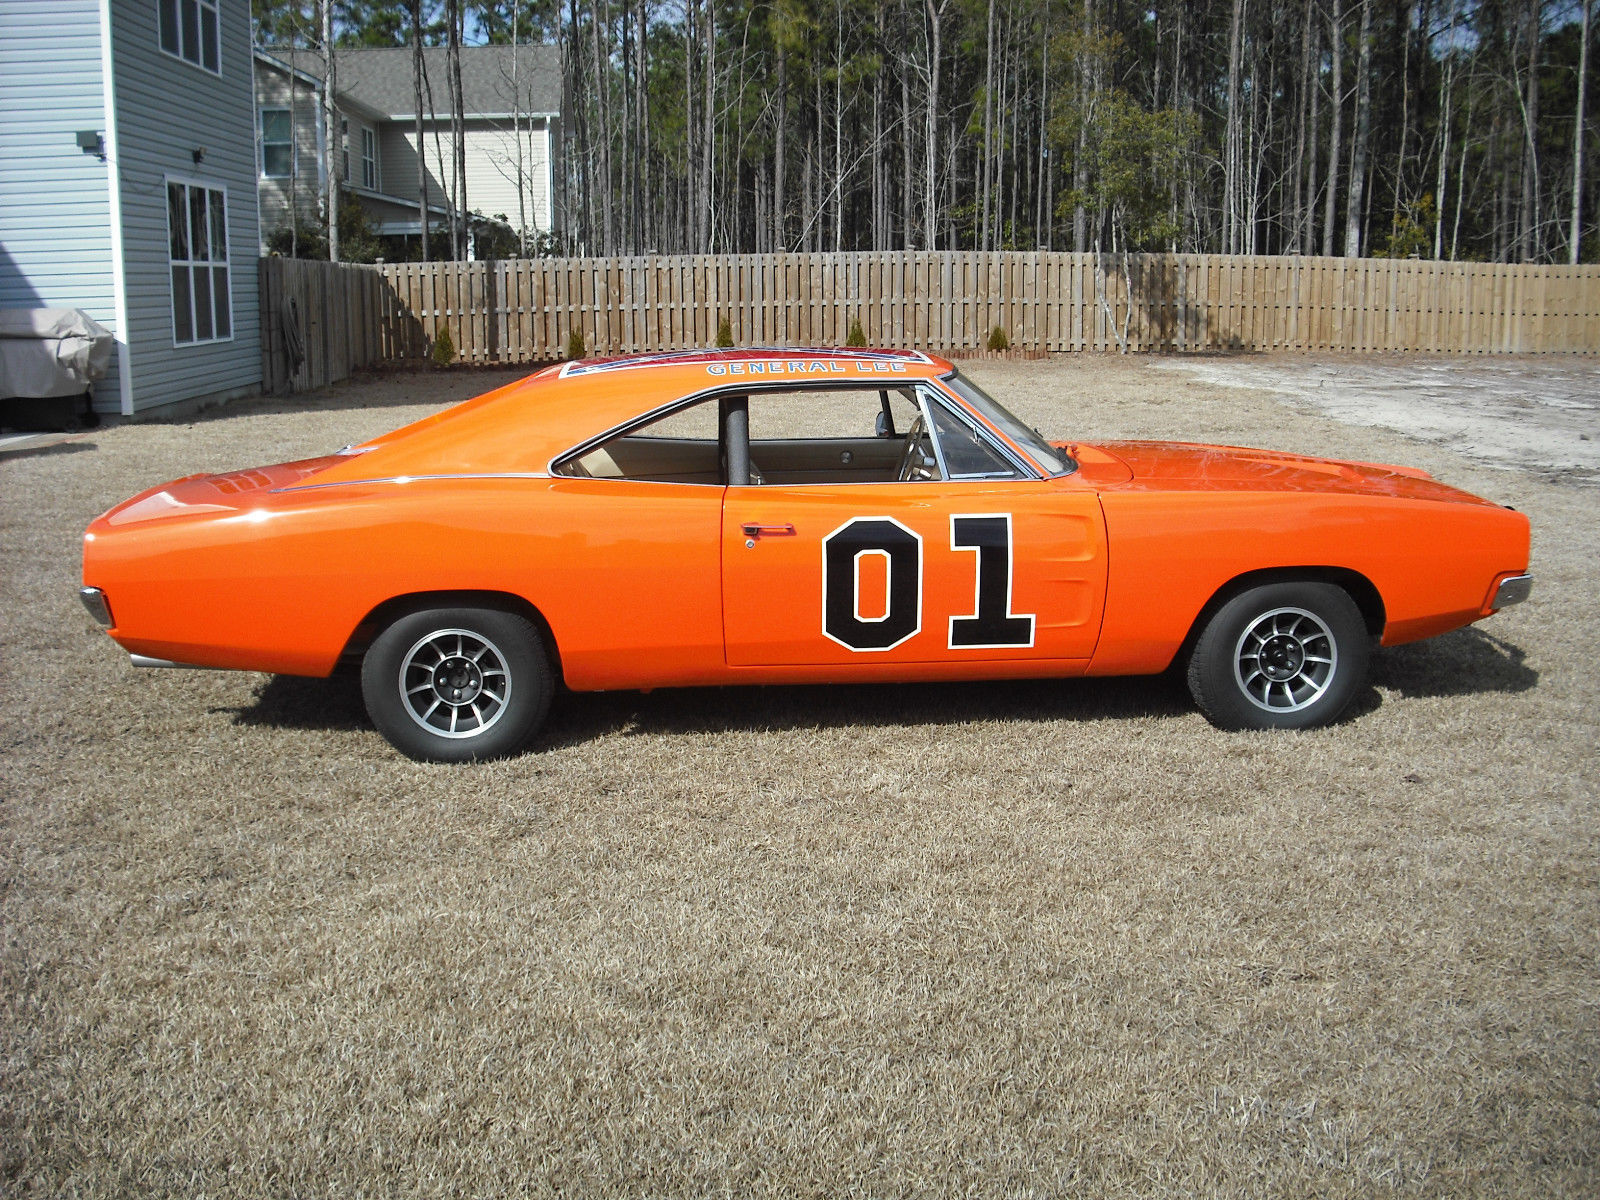 1968 Dodge Charger Wallpaper Cars Bangshift Com There Is A Pristine General Lee For Sale On Ebay